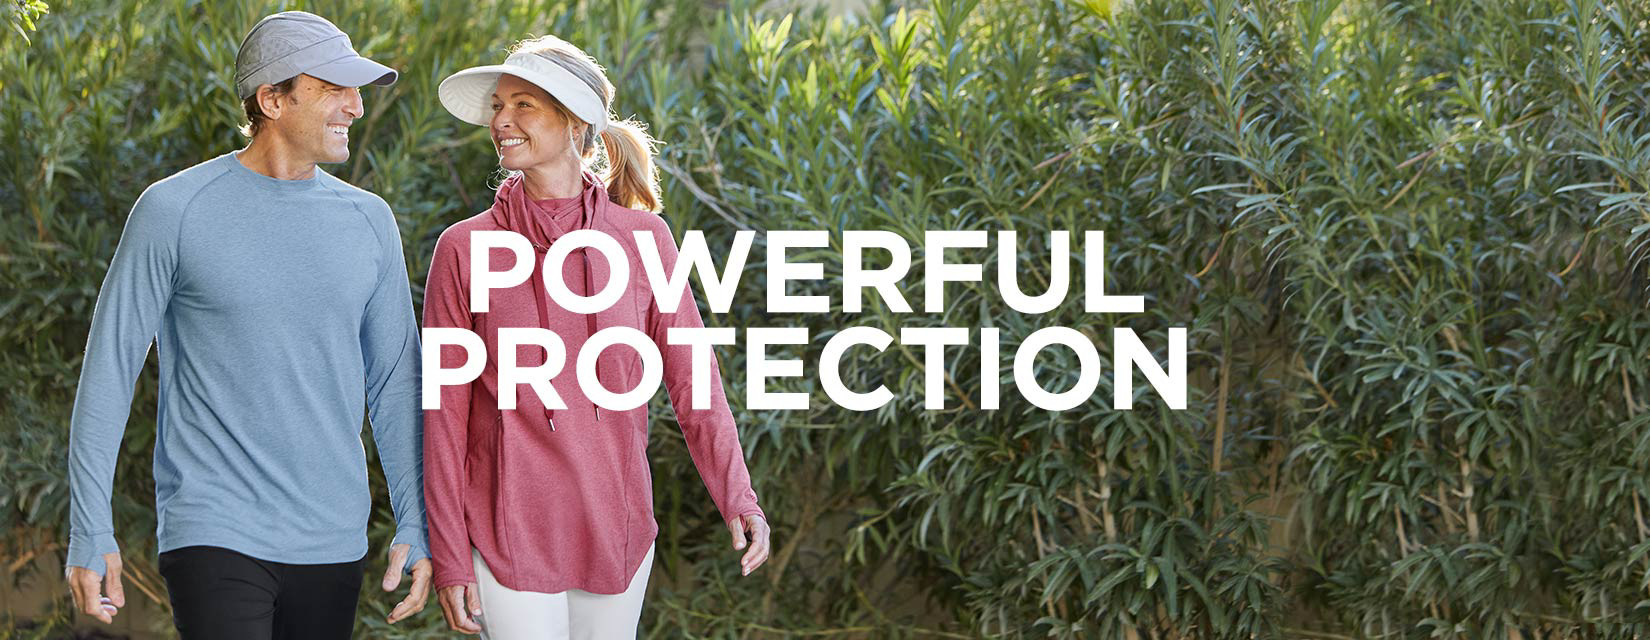 Powerful protection